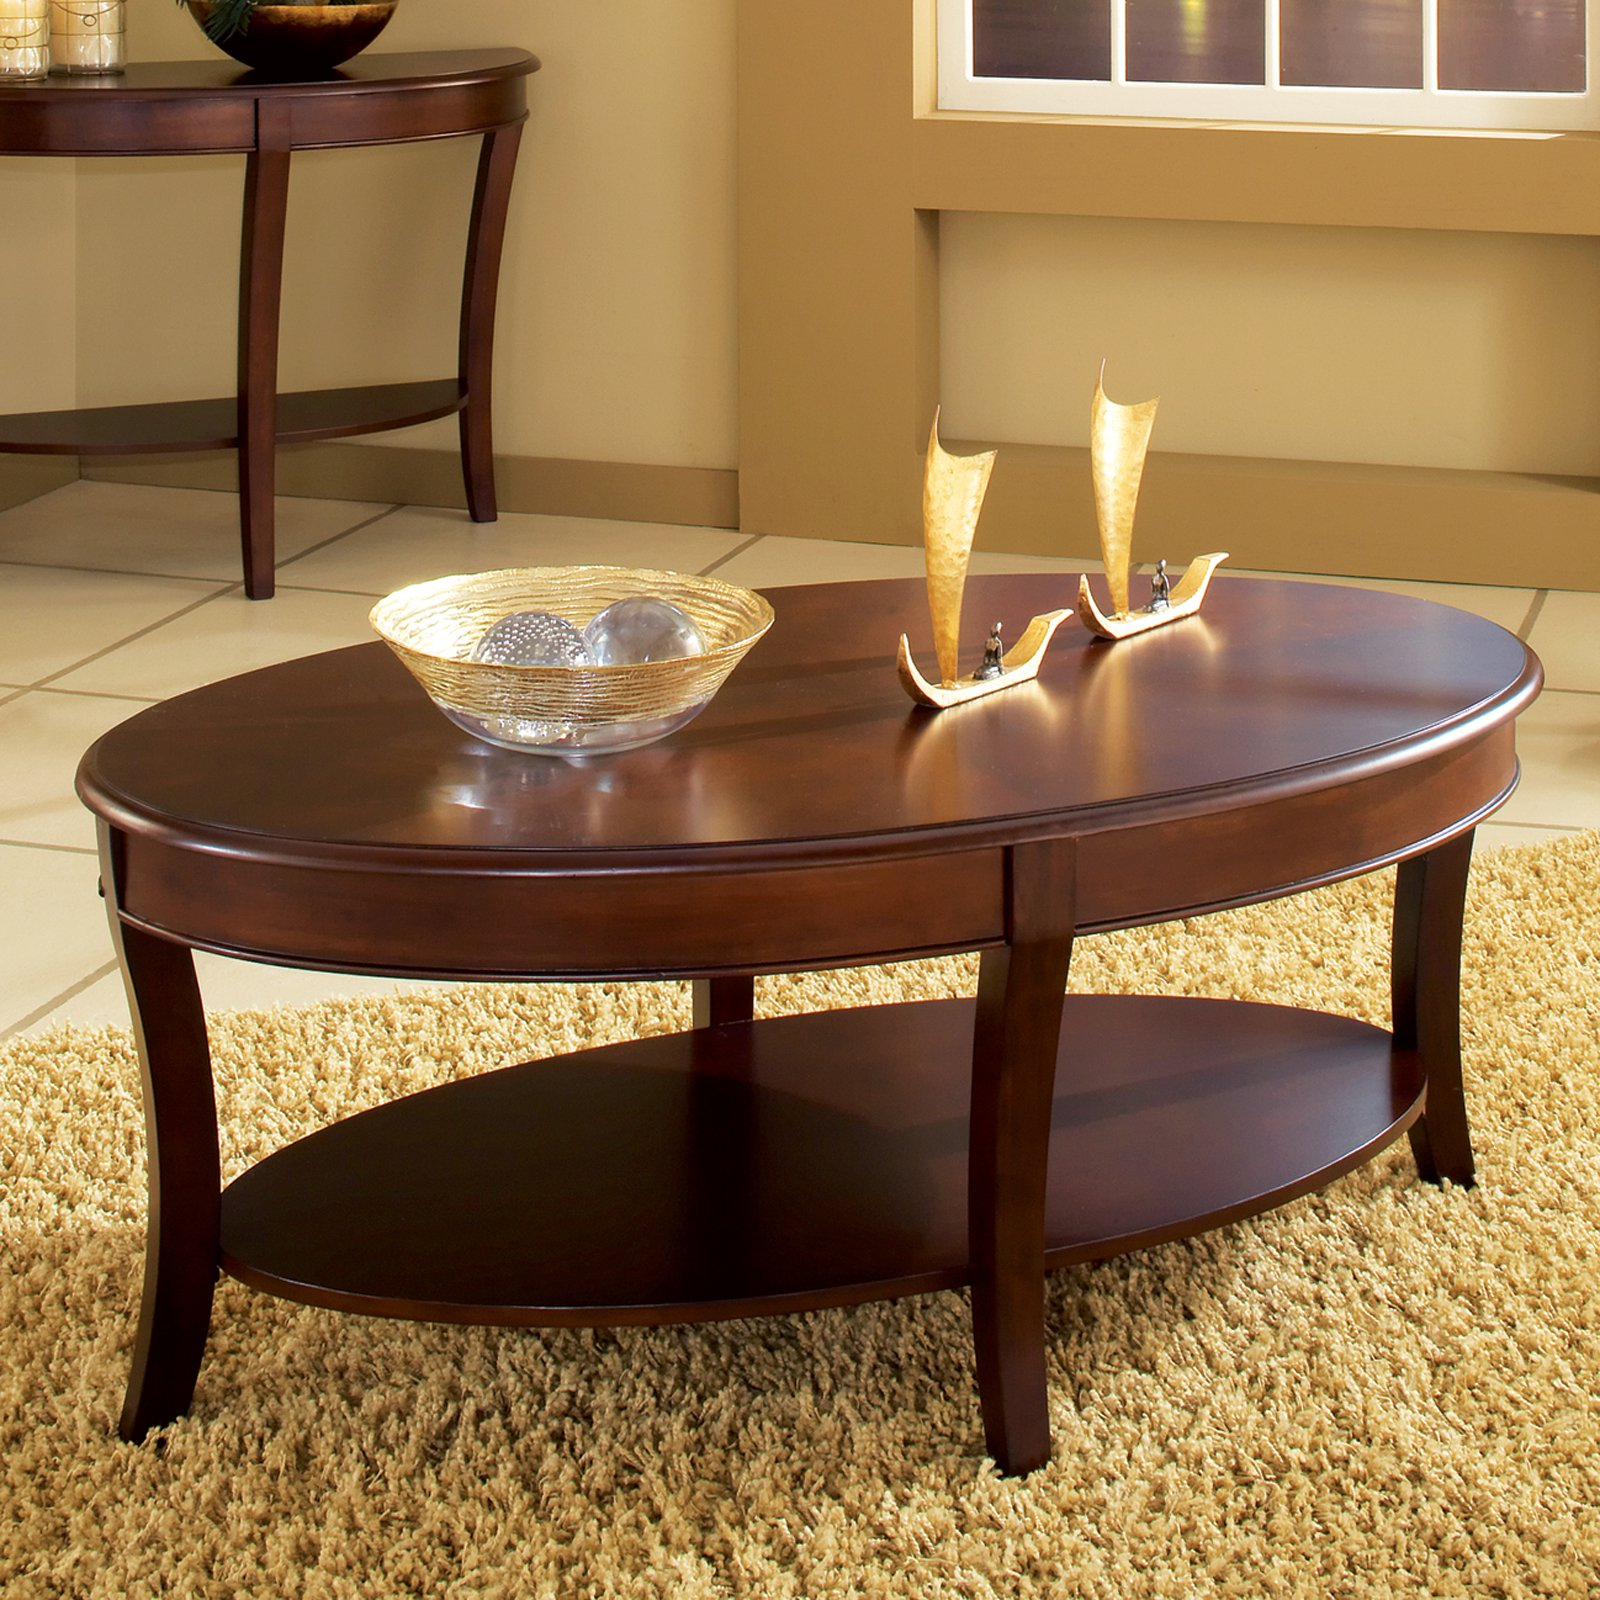 steve silver troy oval cherry wood coffee table - walmart